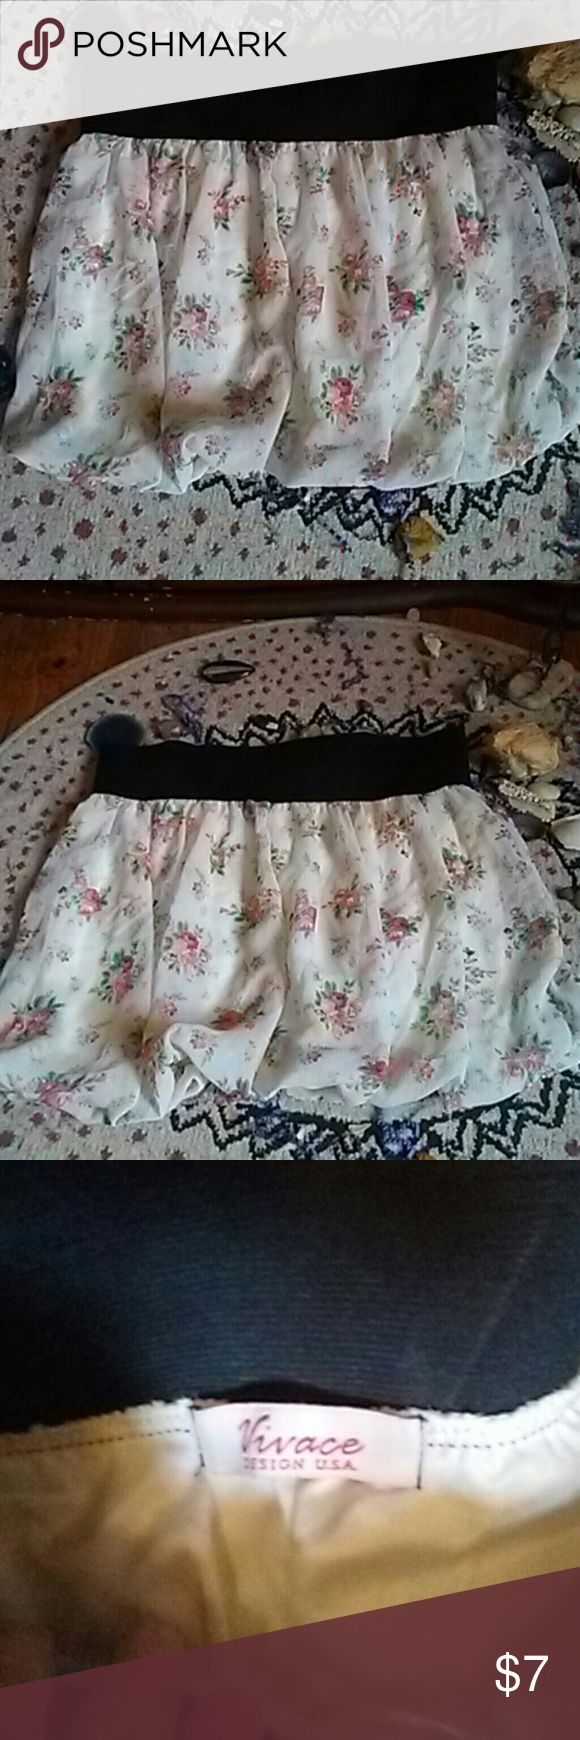 Vivace Design vintage boho skirt Vivace design usa white with floral print mini flowy boho skirt. Black stretchy band on waist. Size large. Puckered bottom seam and double layered. Vivace Skirts Mini